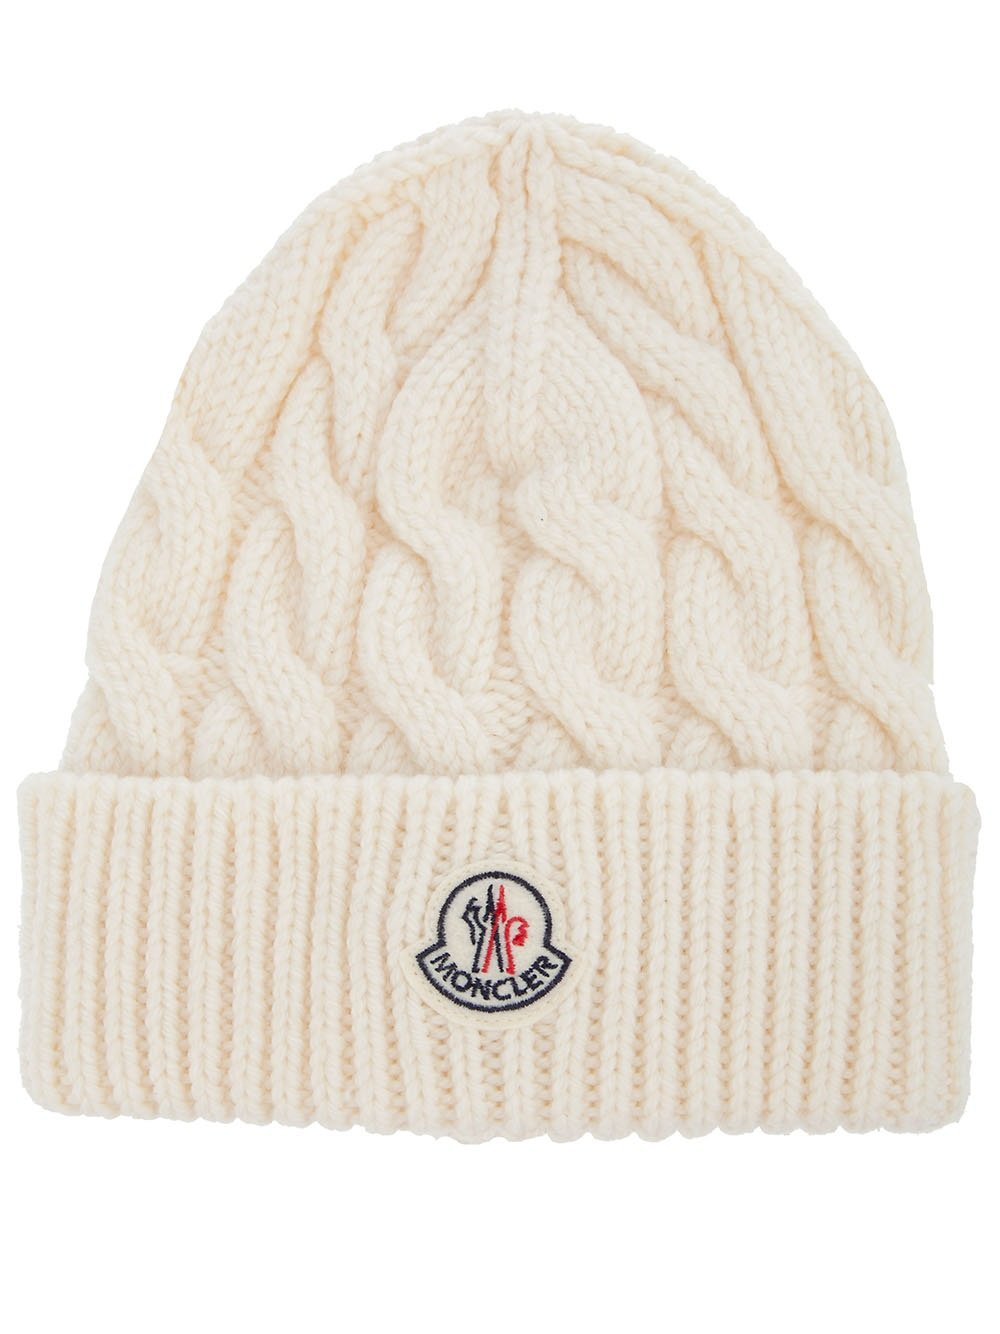 Moncler Cable Knit Hat in Natural for Men - Lyst c3fca0a4a